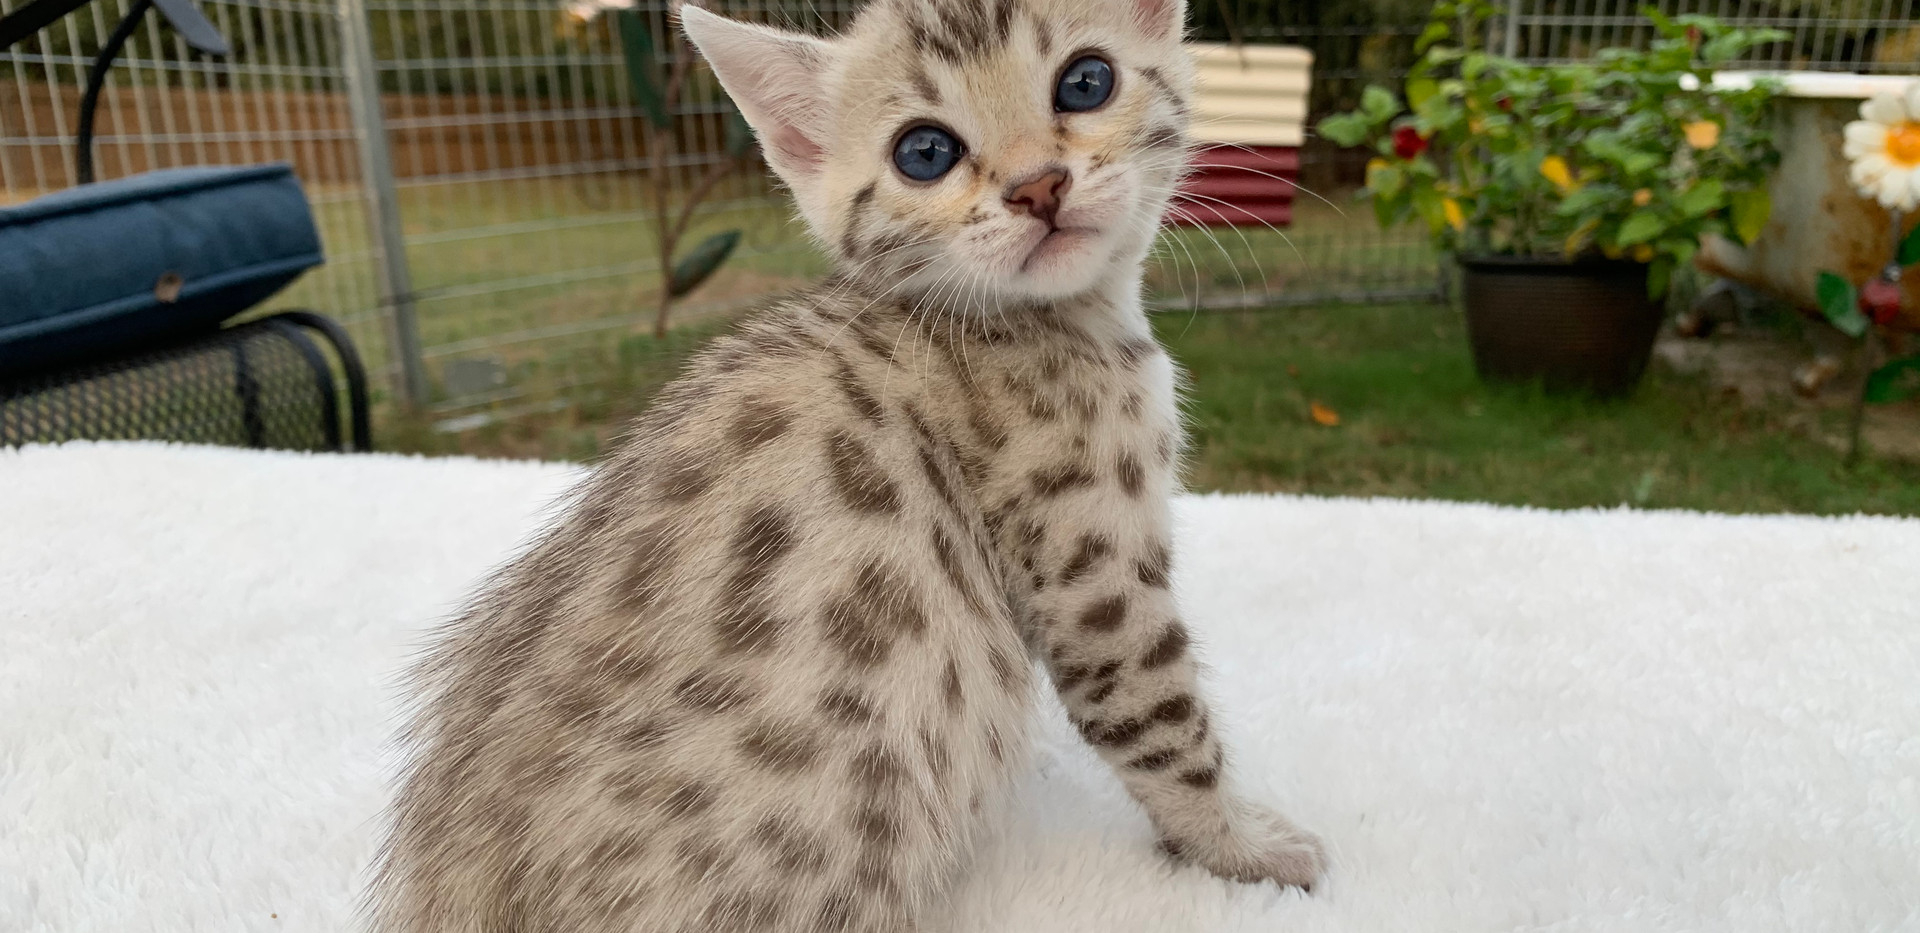 quality spotted sepia bengal kitten cat